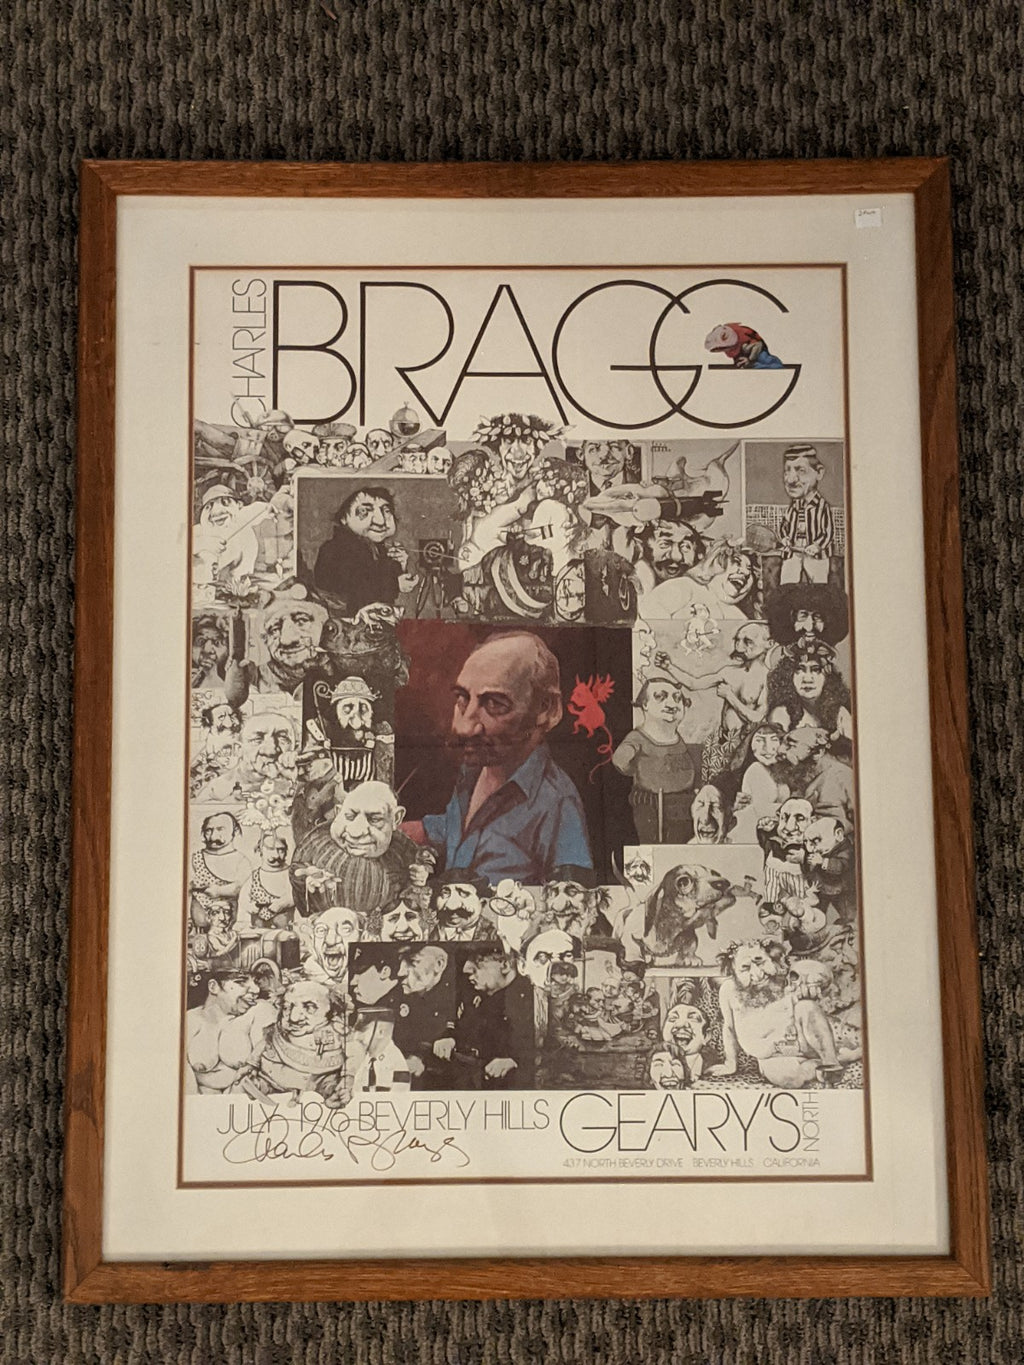 Charles Bragg hand signed collage poster art, 1976